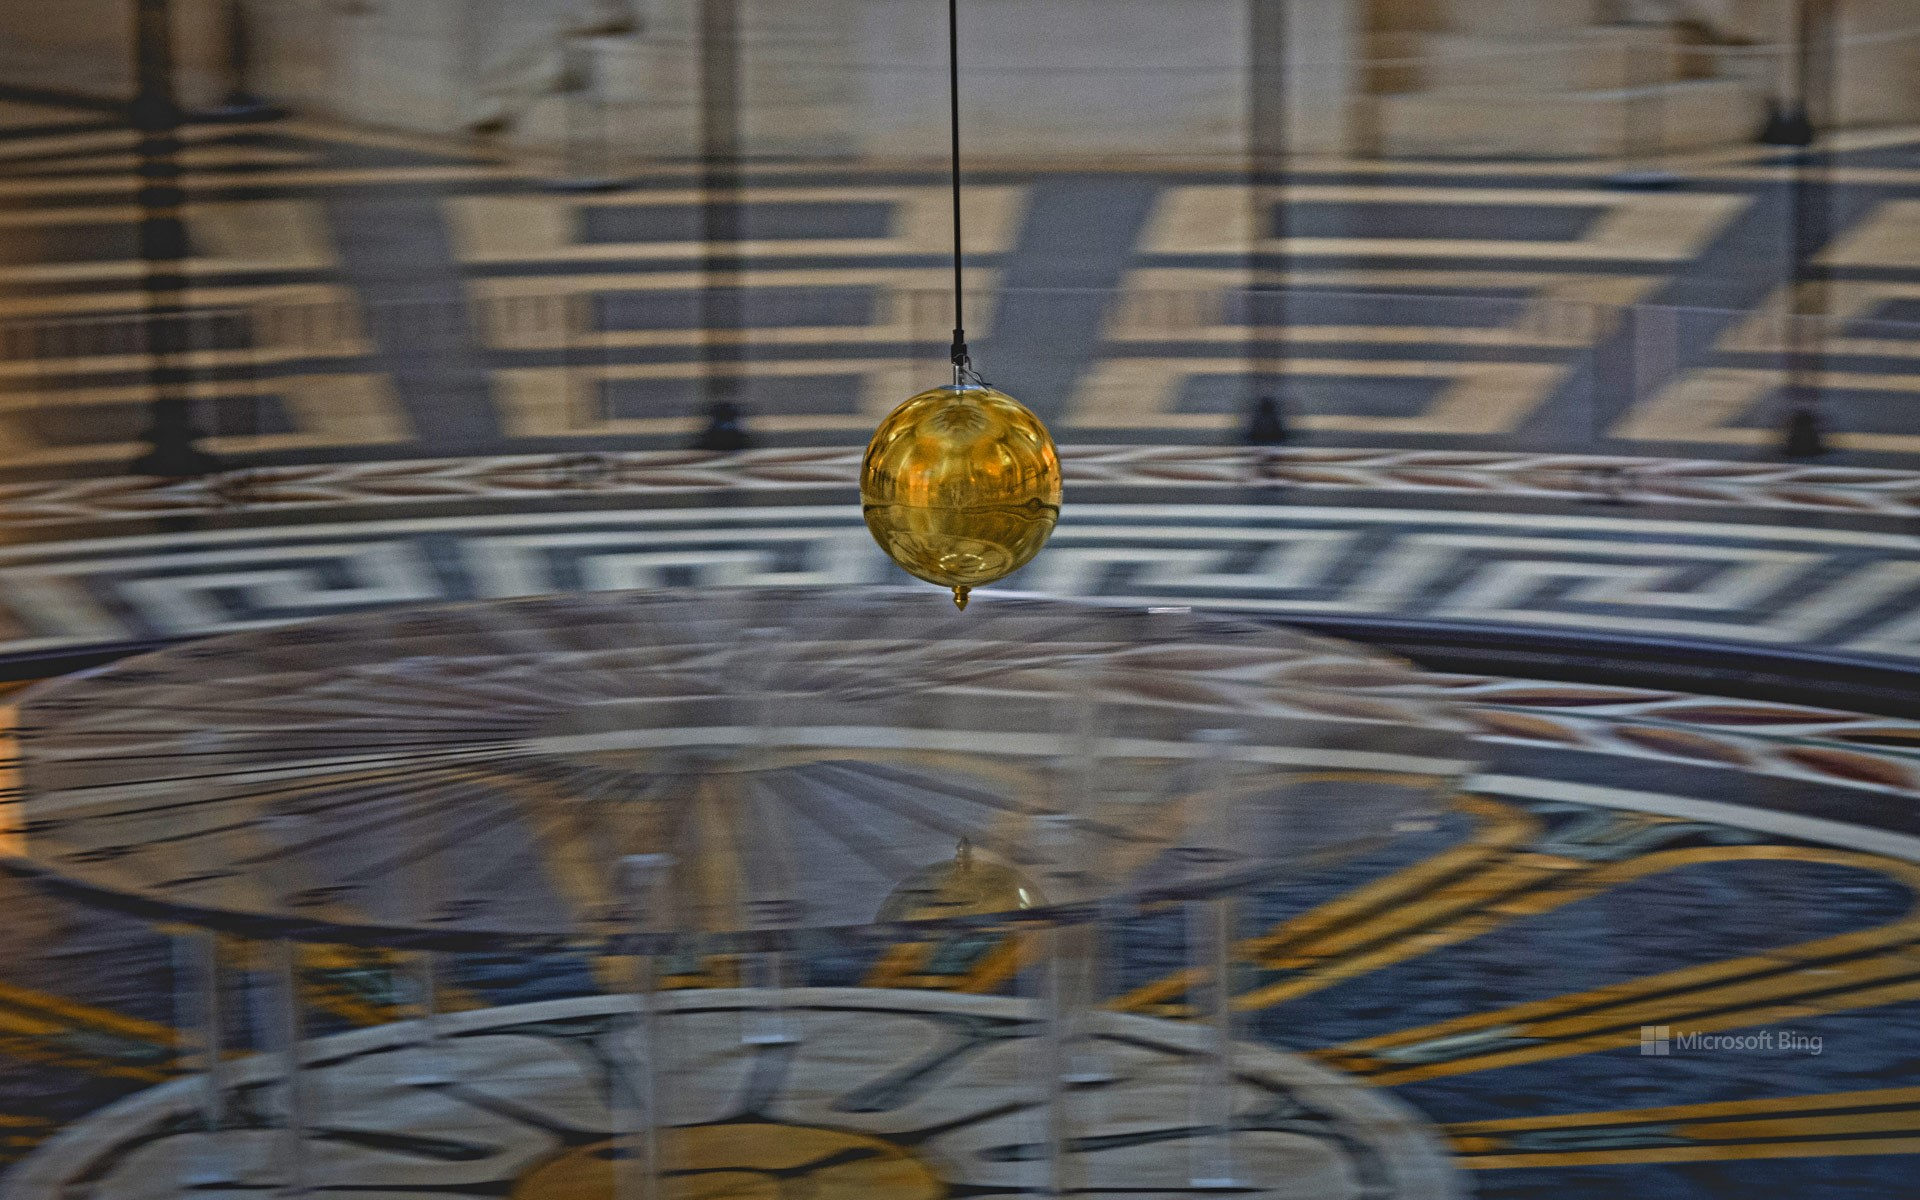 Foucault pendulum at the Panthéon in Paris, France